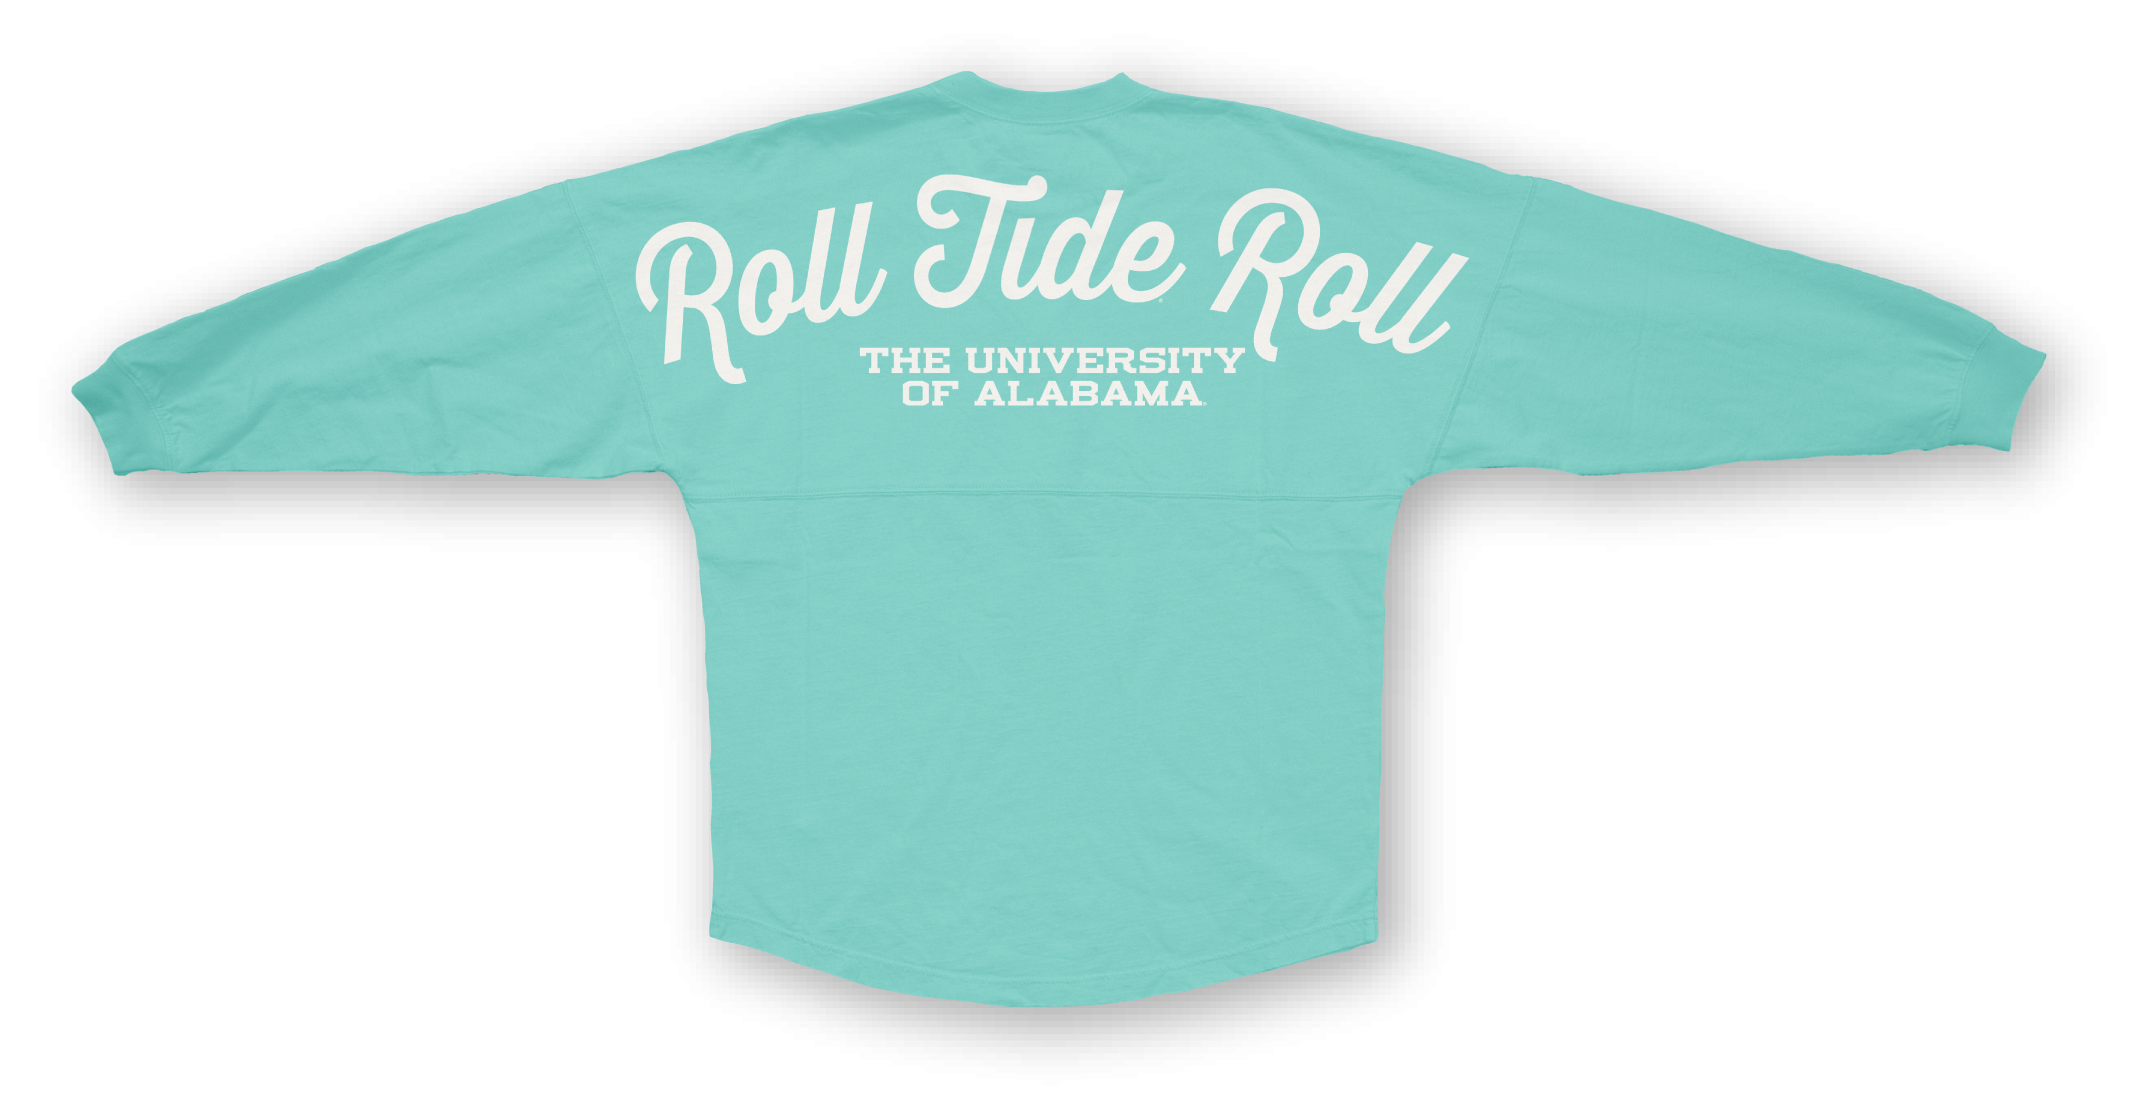 This is our famous spirit jersey. The shirt is made of 100% cotton. Remember the spirit jerseys fit very large. Keep this in mind while making your selections.  $29.99